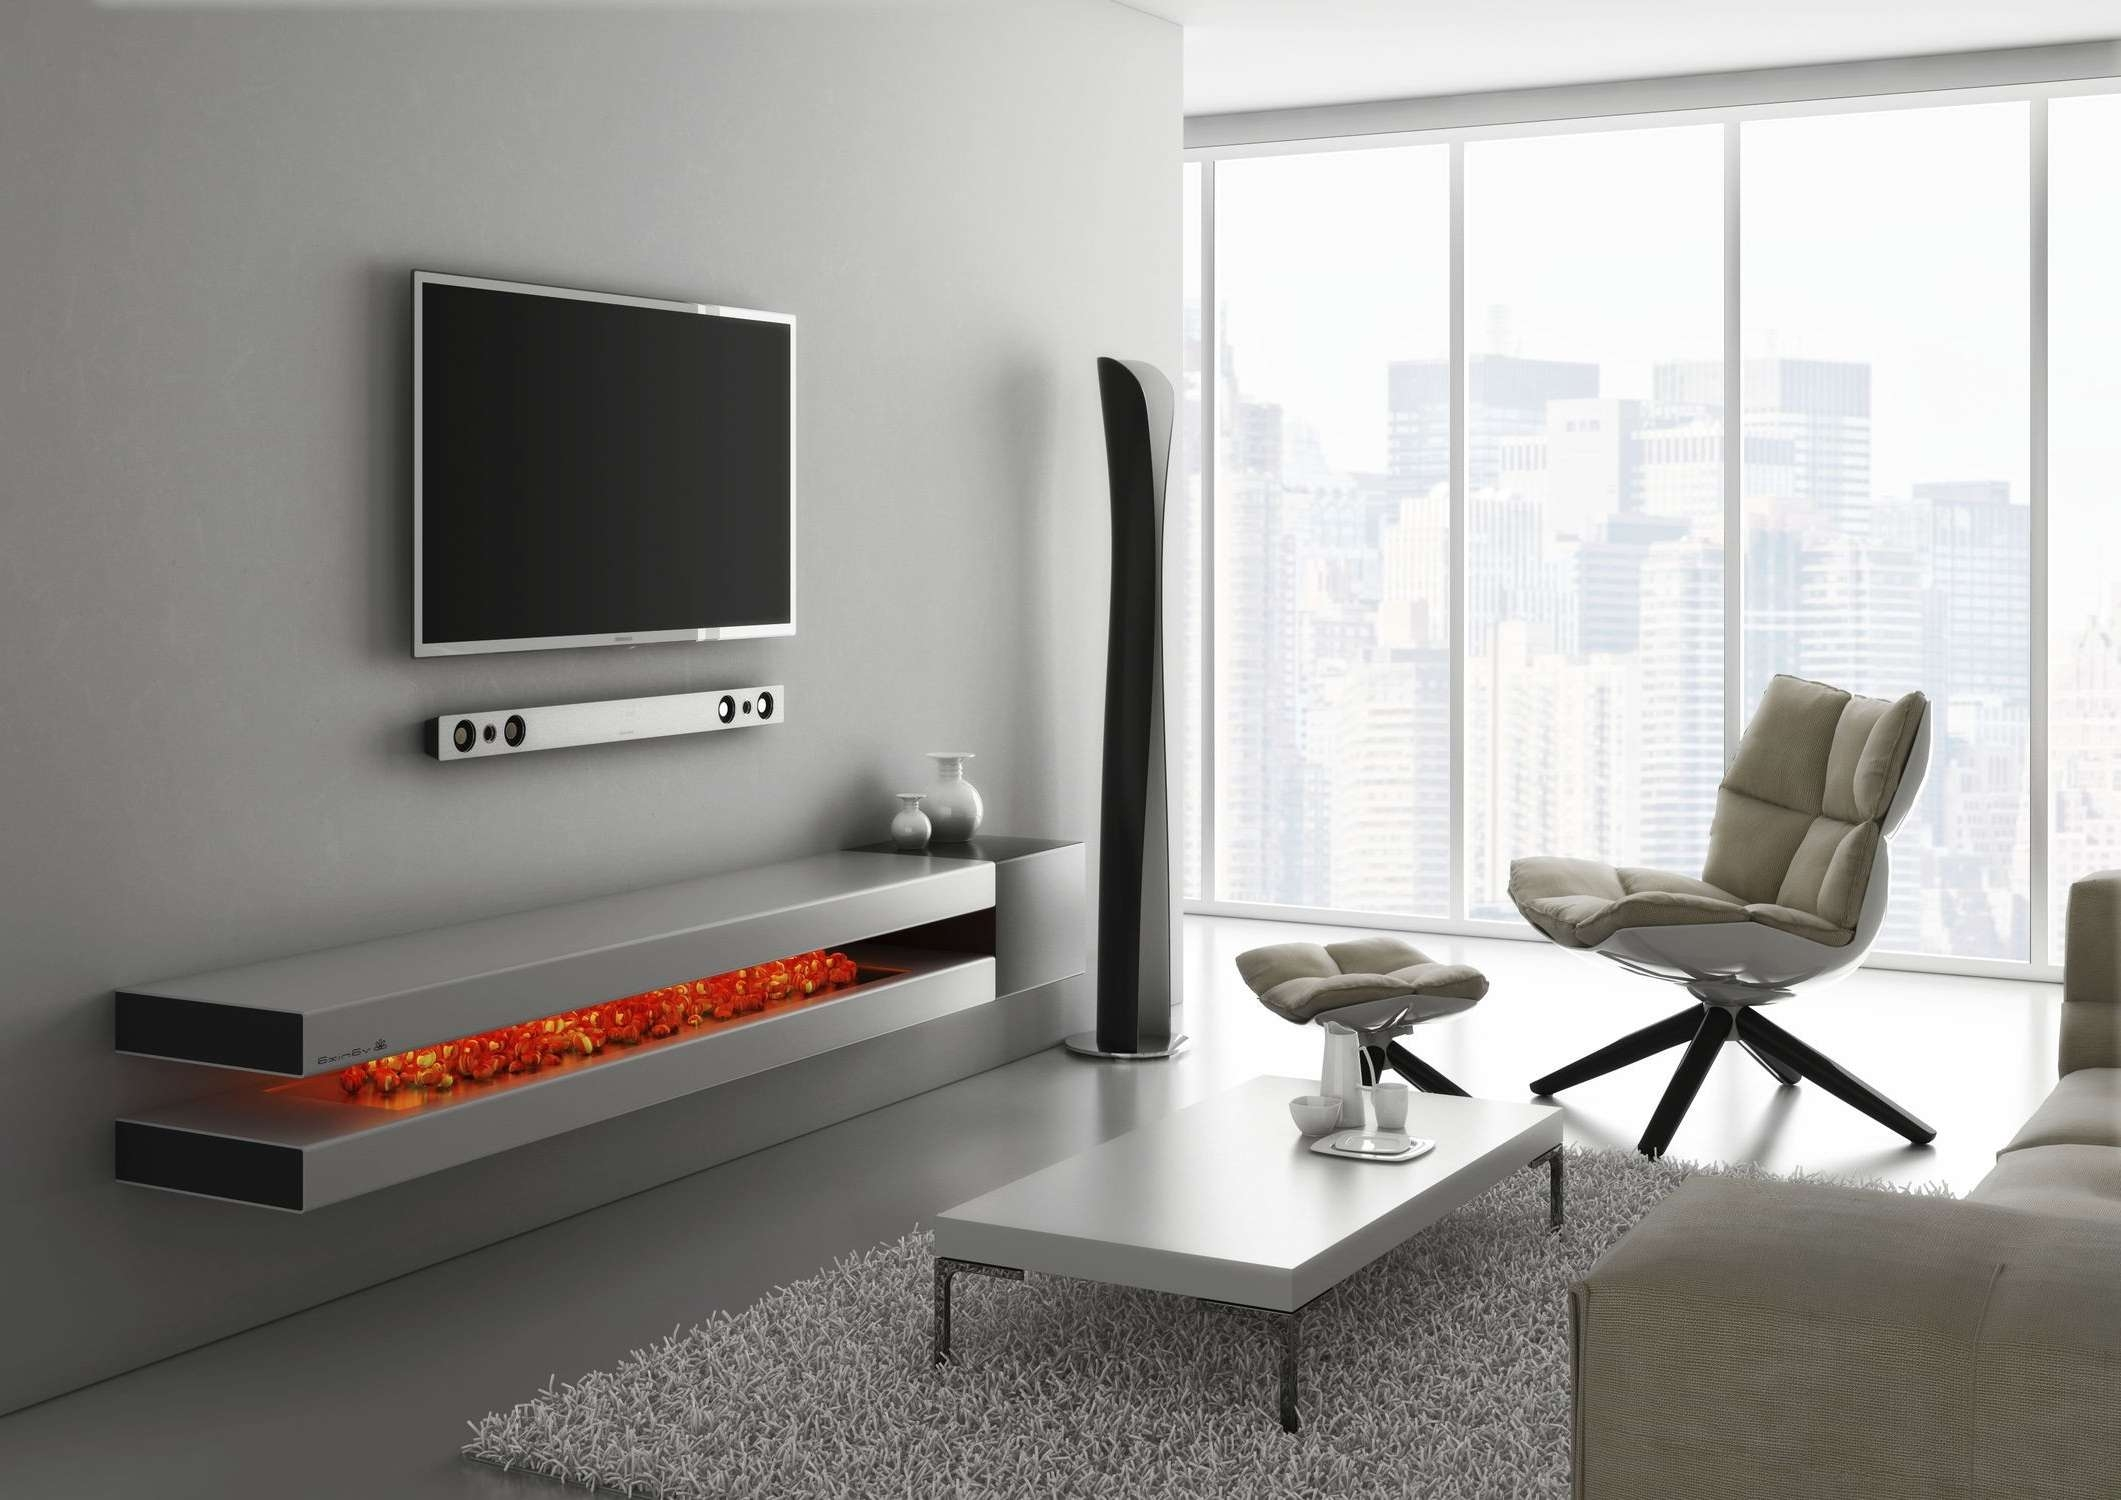 Contemporary White Floating Tv Stands With Media Shelving Attached Inside Under Tv Cabinets (View 18 of 20)